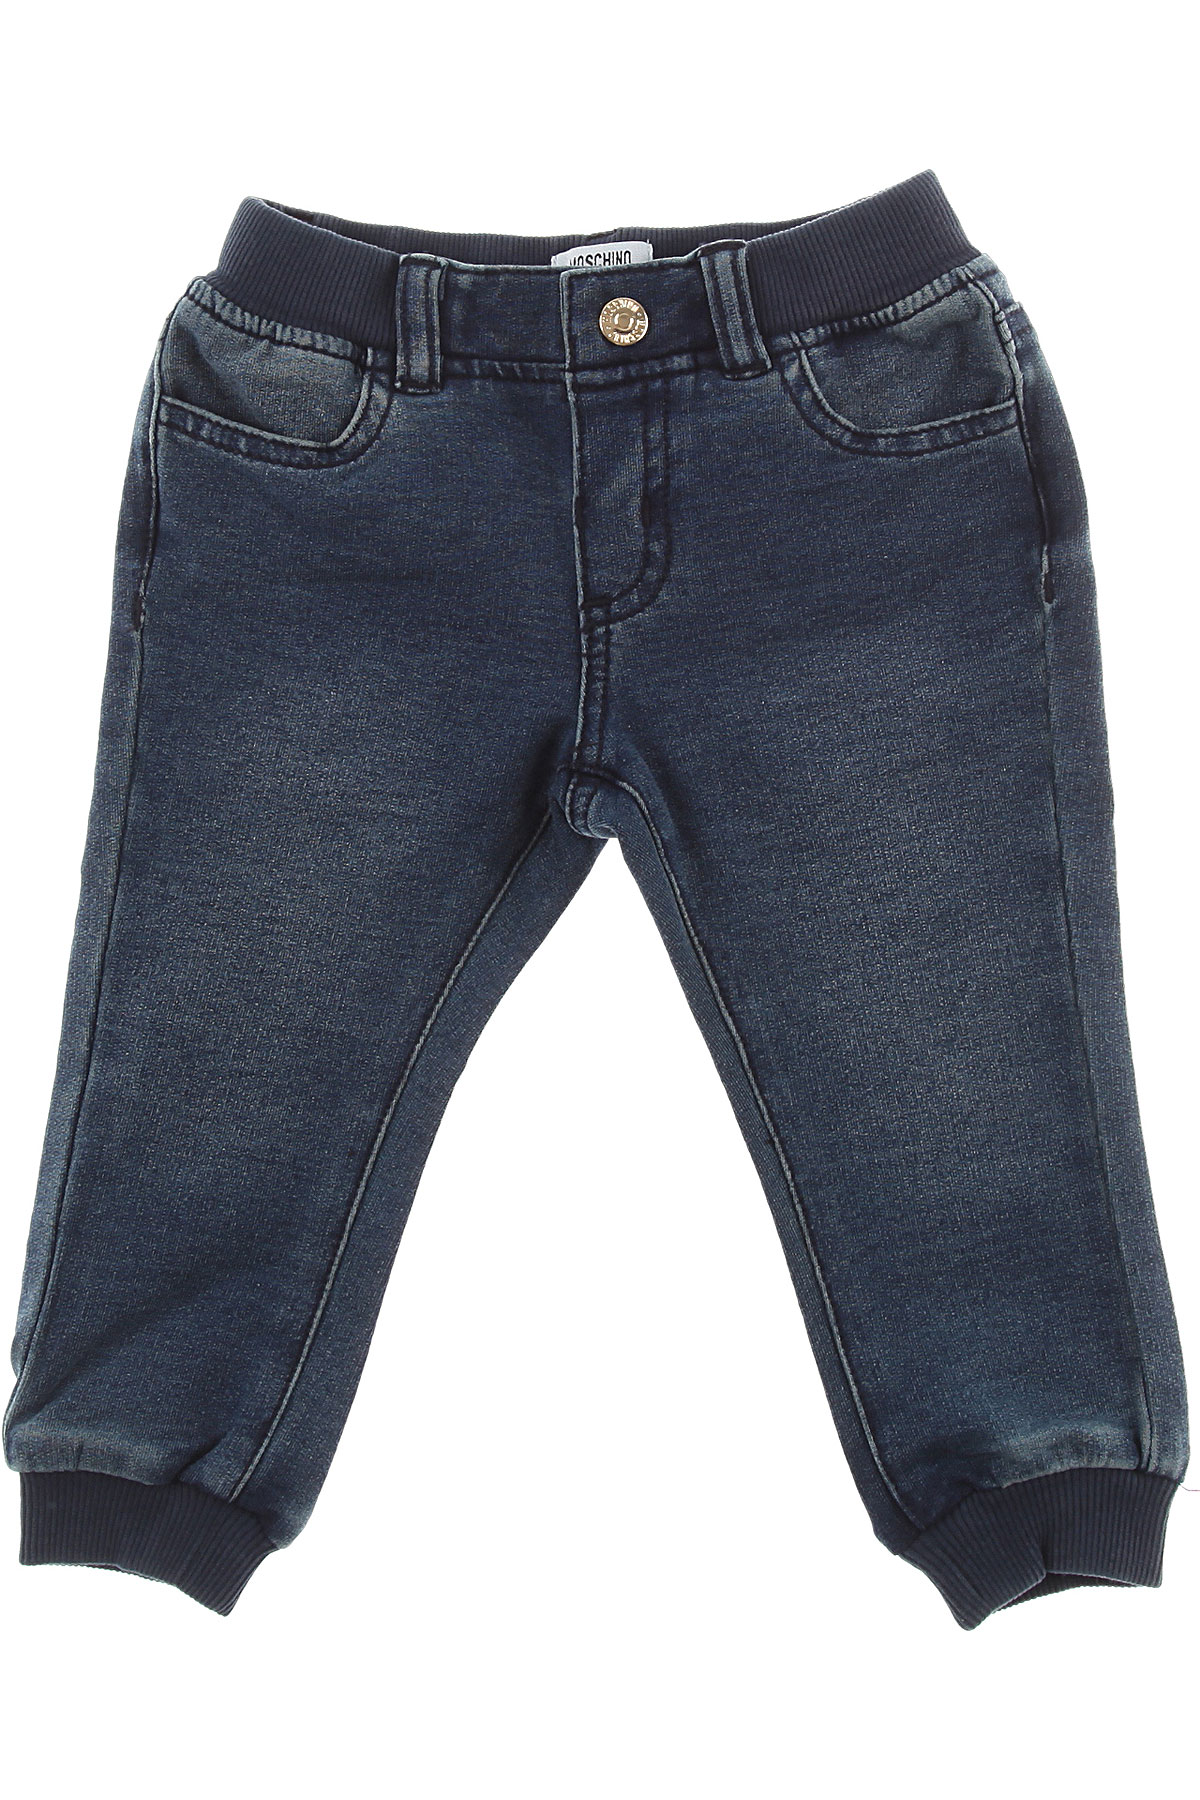 Image of Moschino Baby Jeans for Boys, Blue Denim, Cotton, 2017, 24M 2Y 3Y 9M